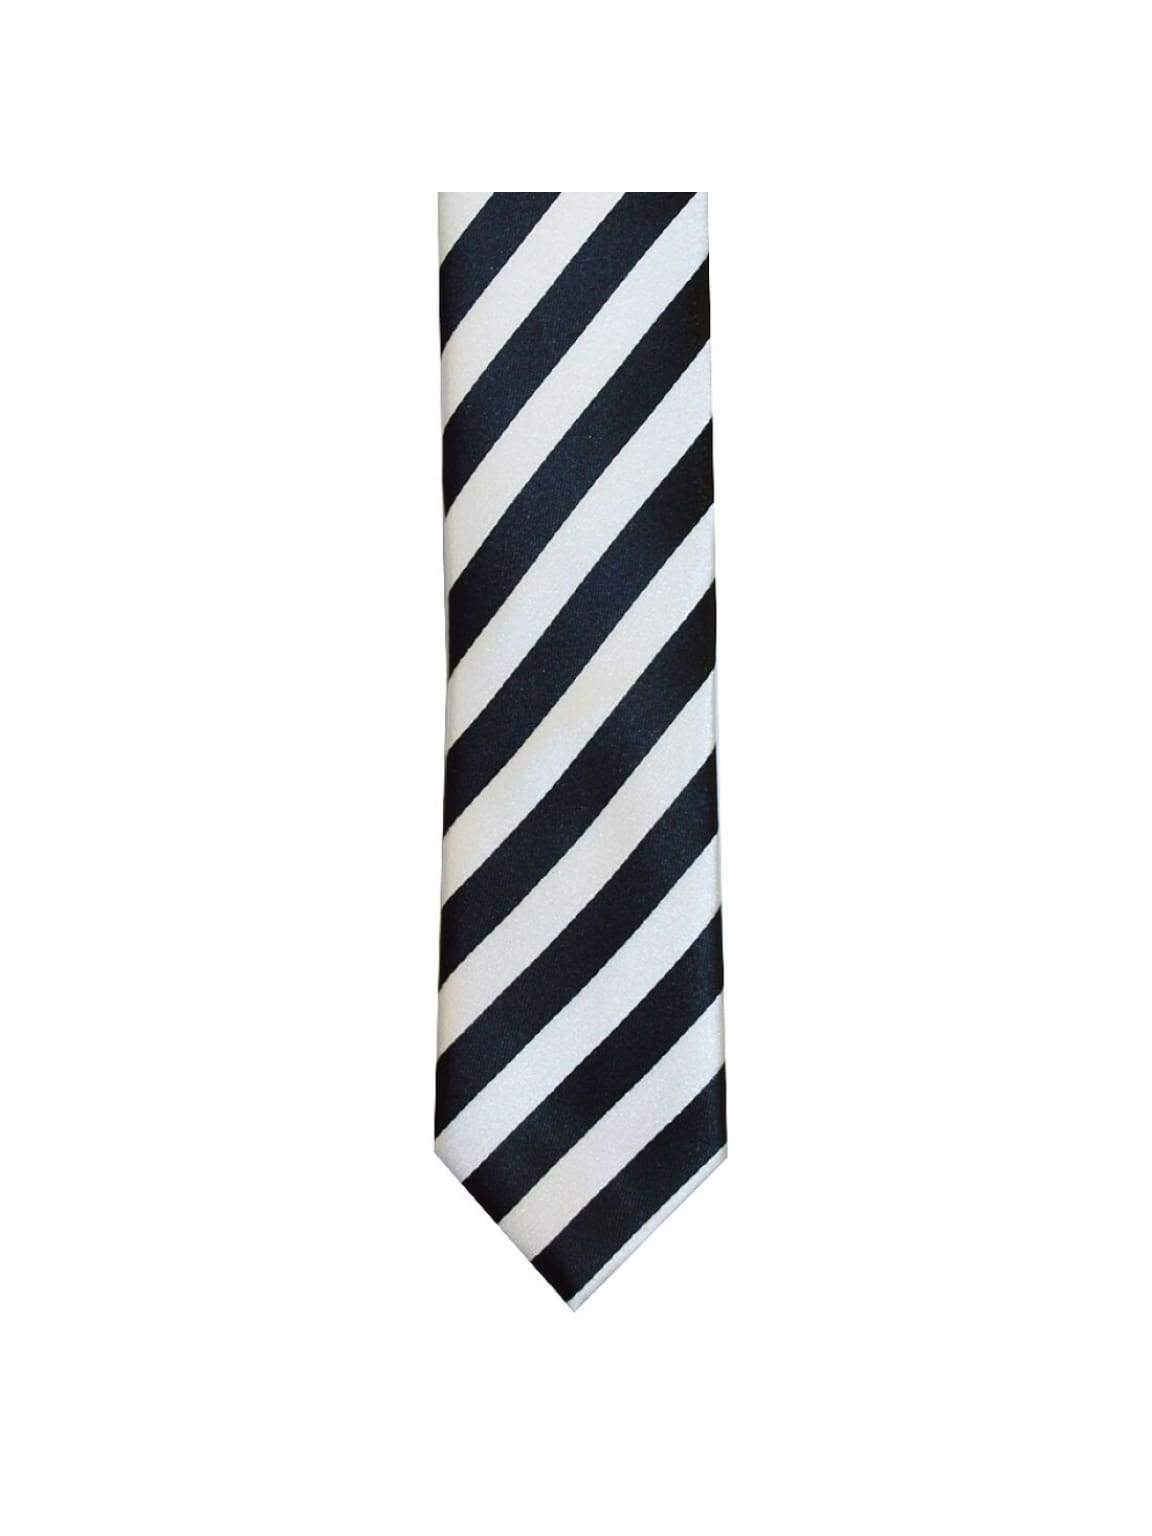 LA Smith Black And White Skinny Stripe Tie - Accessories